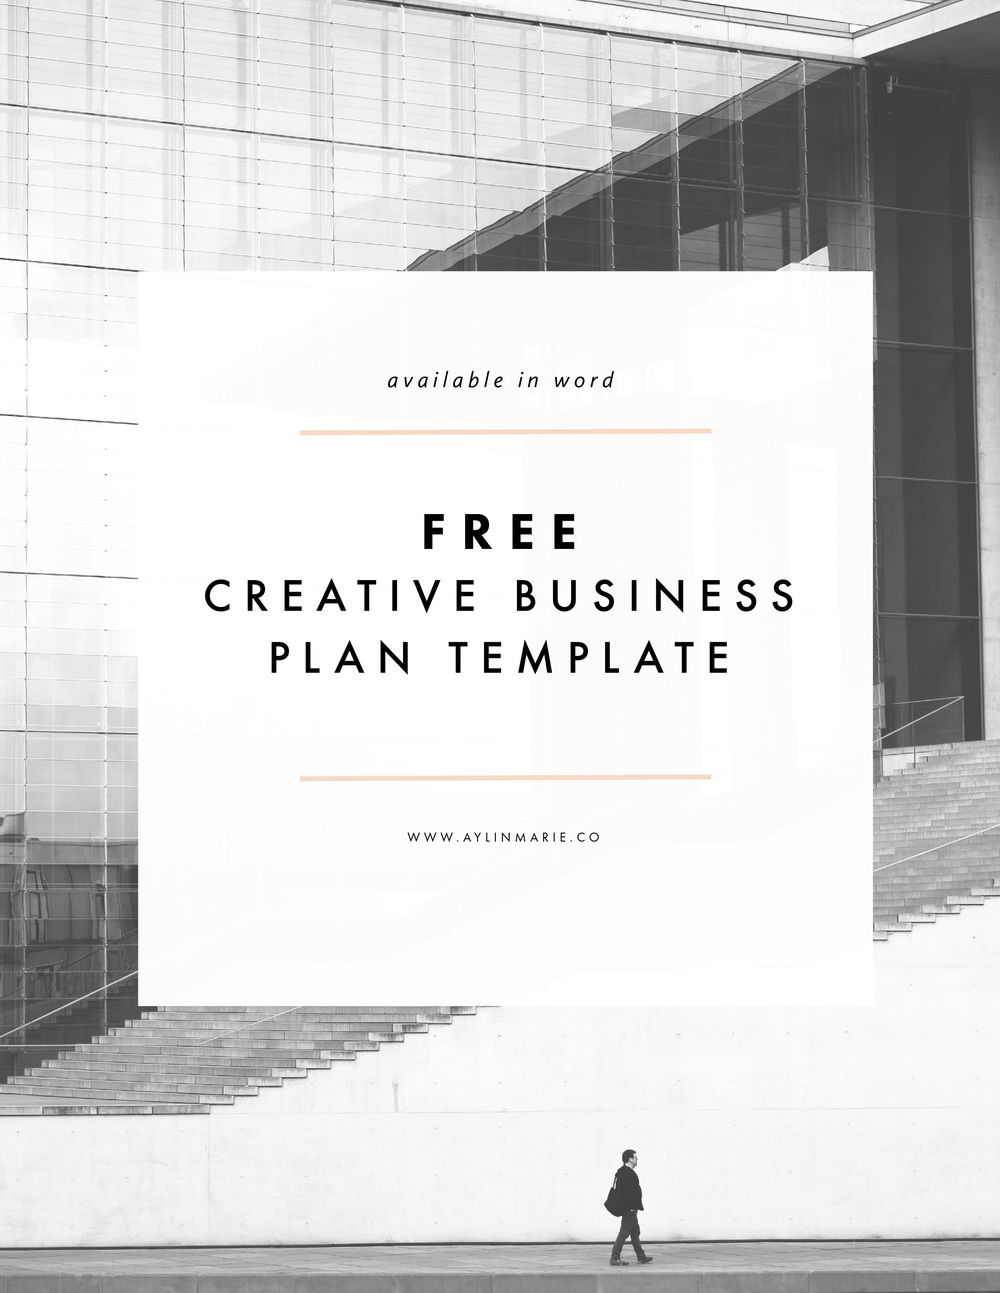 Freebie creative business plan template aylin marie freebie creative business plan template cheaphphosting Gallery